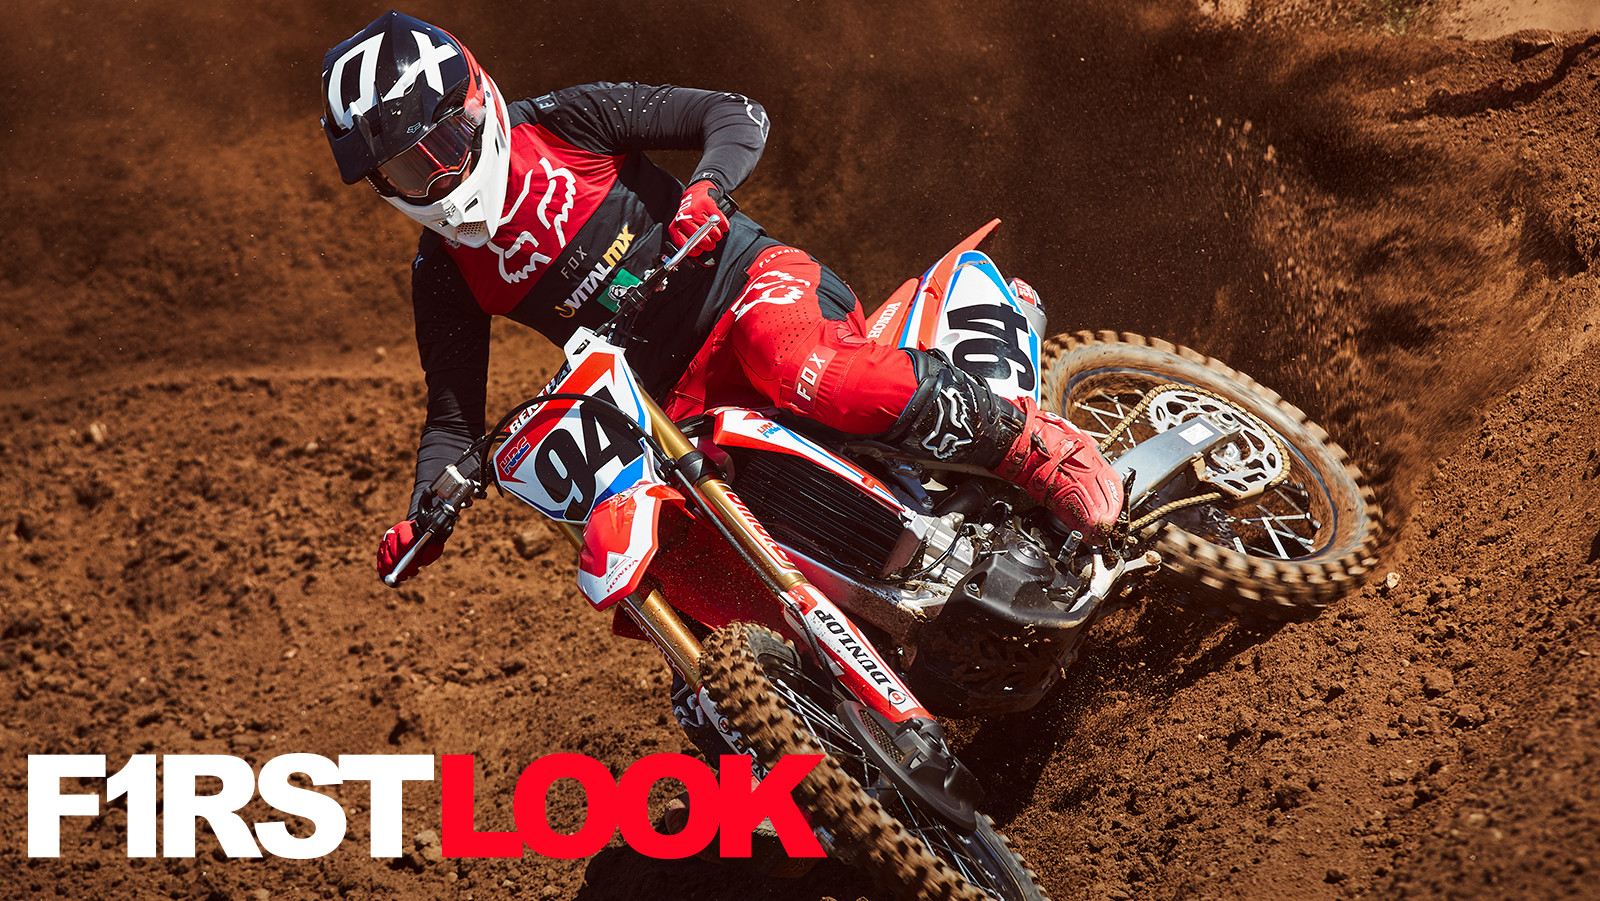 First Look: Fox Racing's 2019 Line